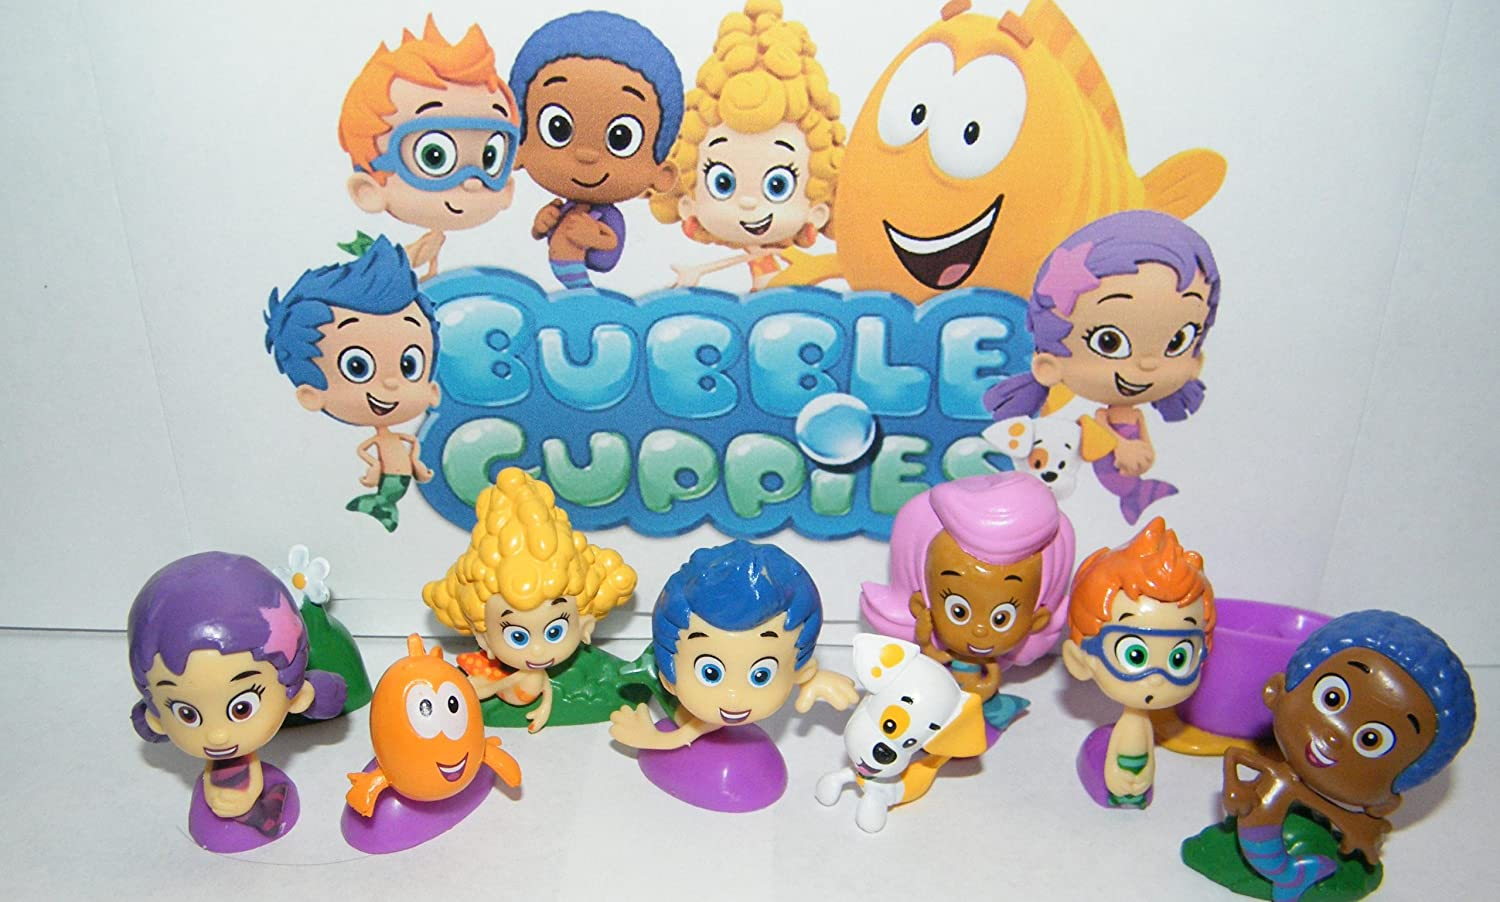 Buy Nickelodeon Bubble Guppies Deluxe Figure Set Toy Playset